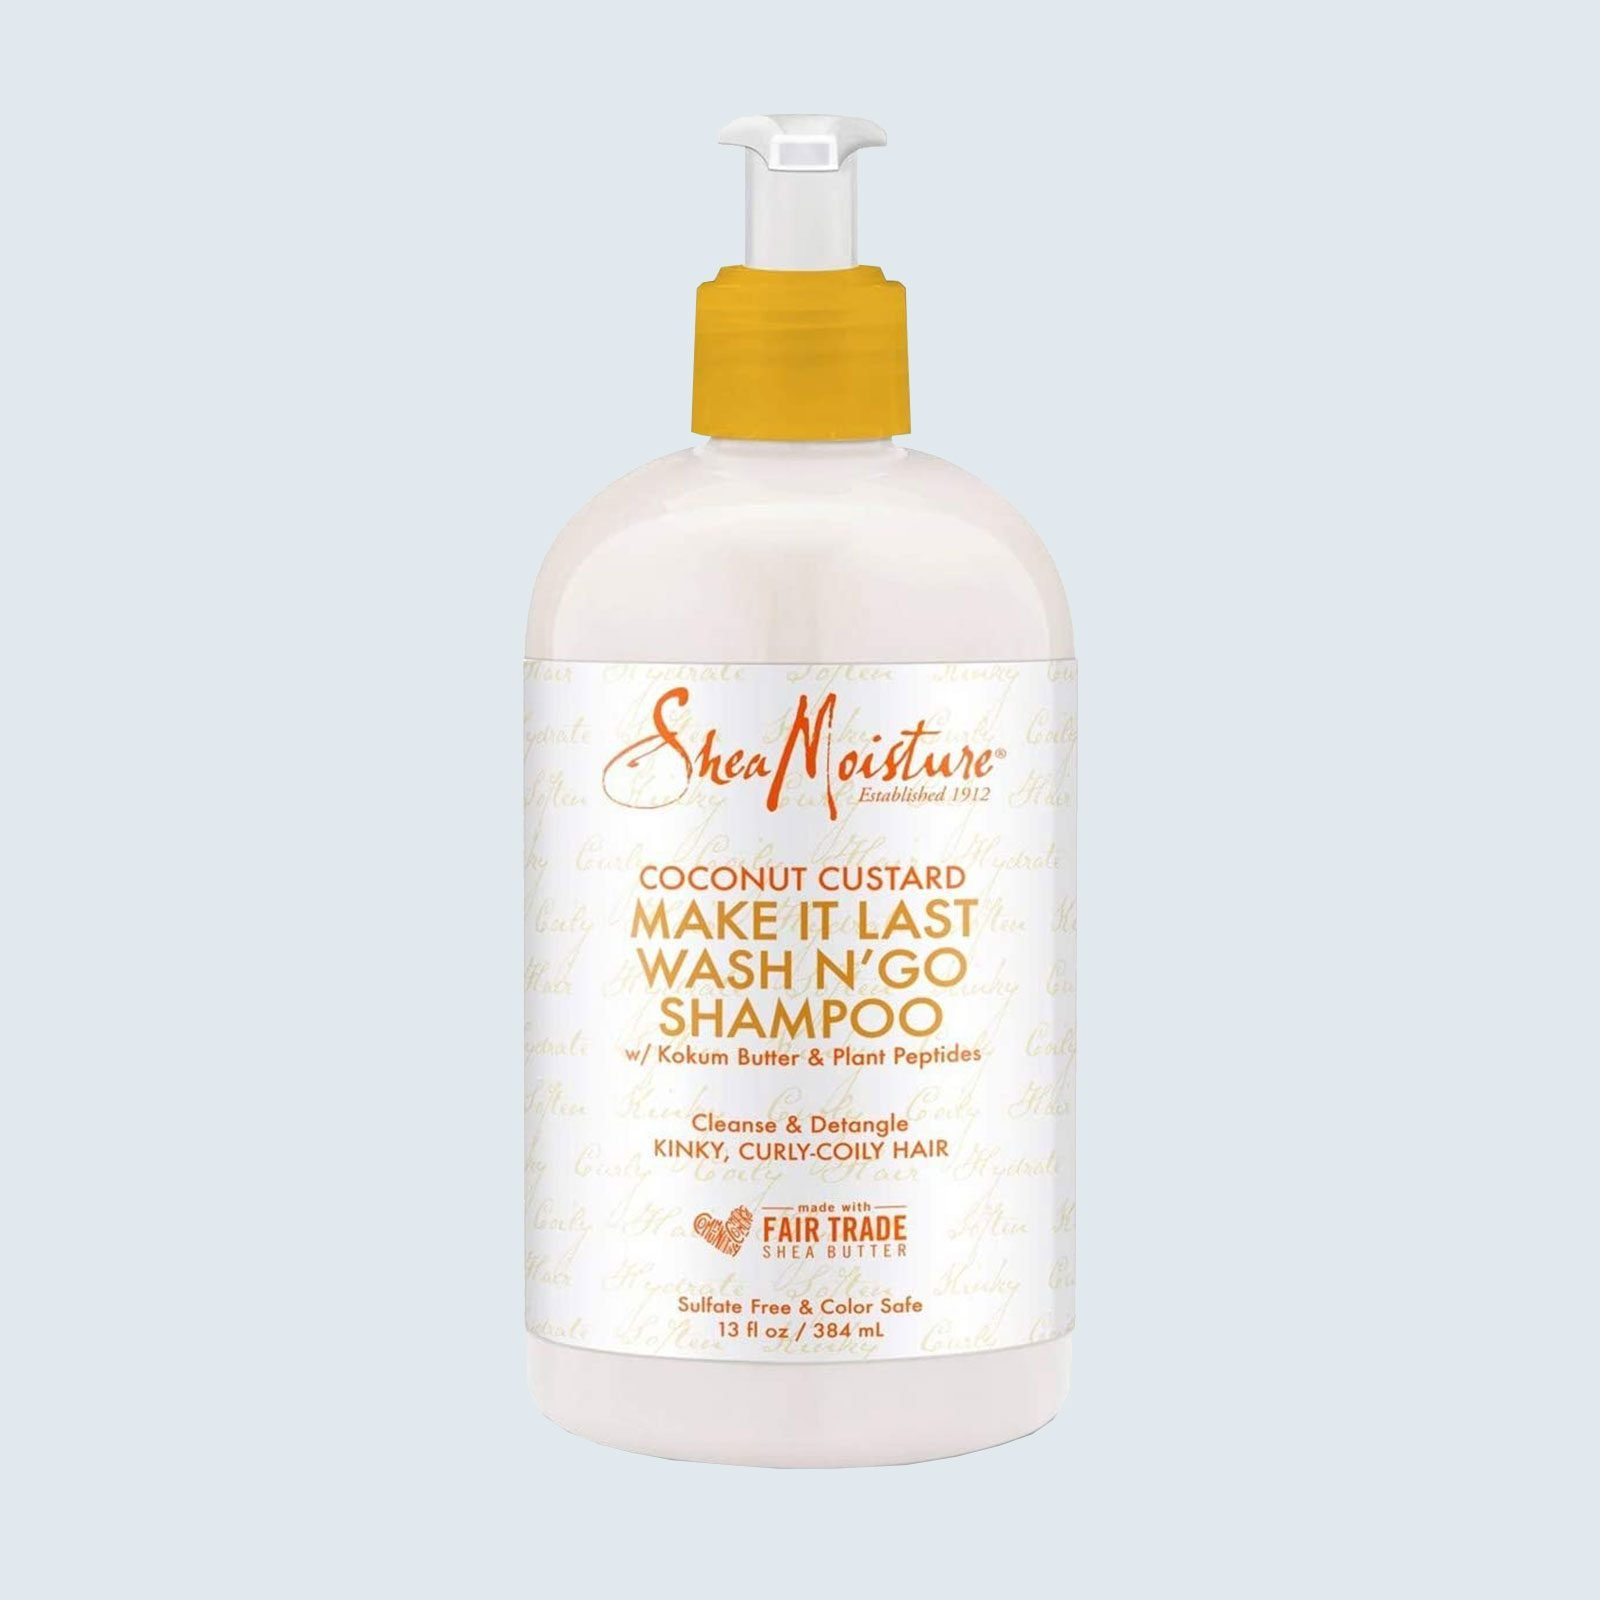 Best shampoo that won't weigh down curly hair: SheaMoisture Coconut Custard Make It Last Wash N' Go Shampoo